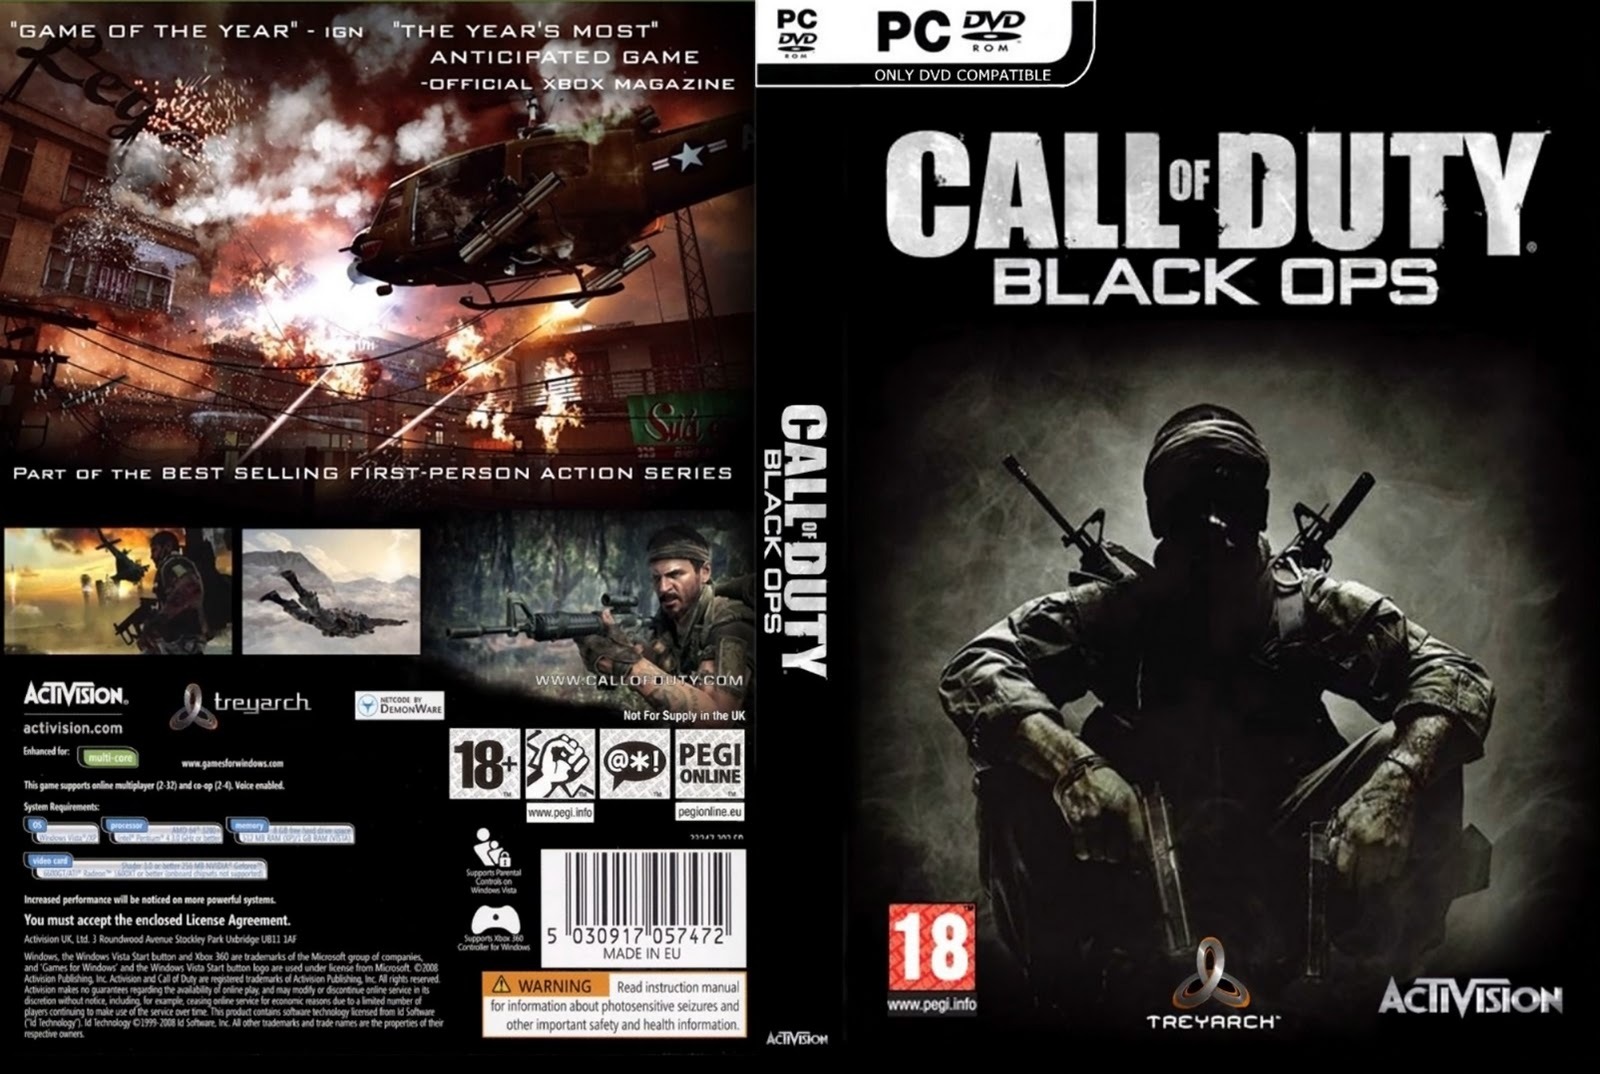 https://www.gamespot.com/articles/get-call-of-duty-black-ops-3-on-pc-for-just-25/1100-6435484/